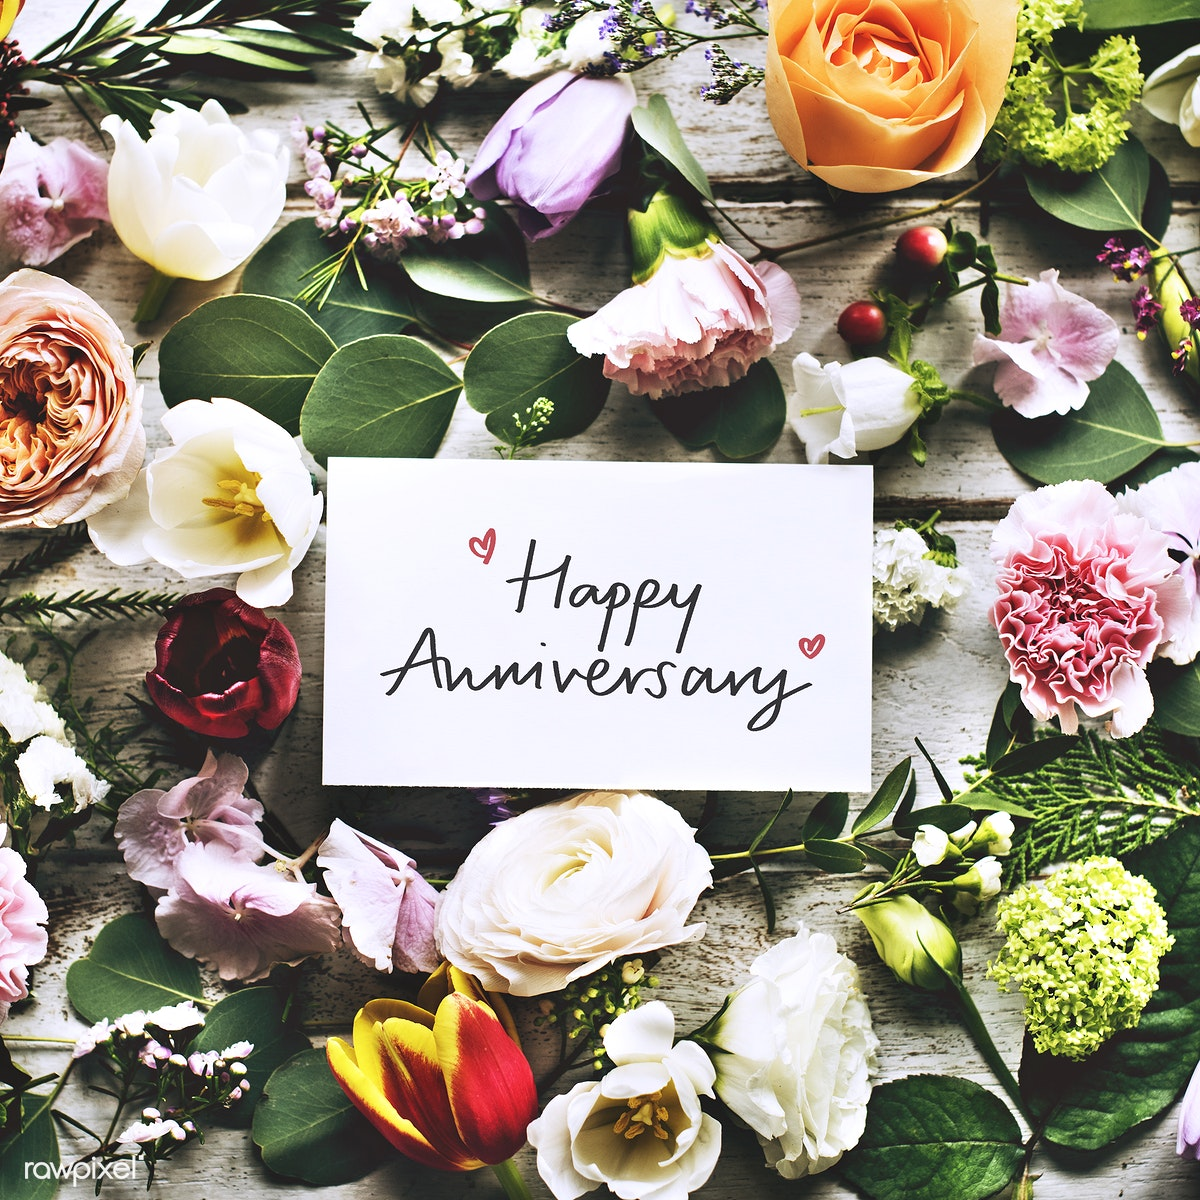 Image result for Happy Anniversary with flowers